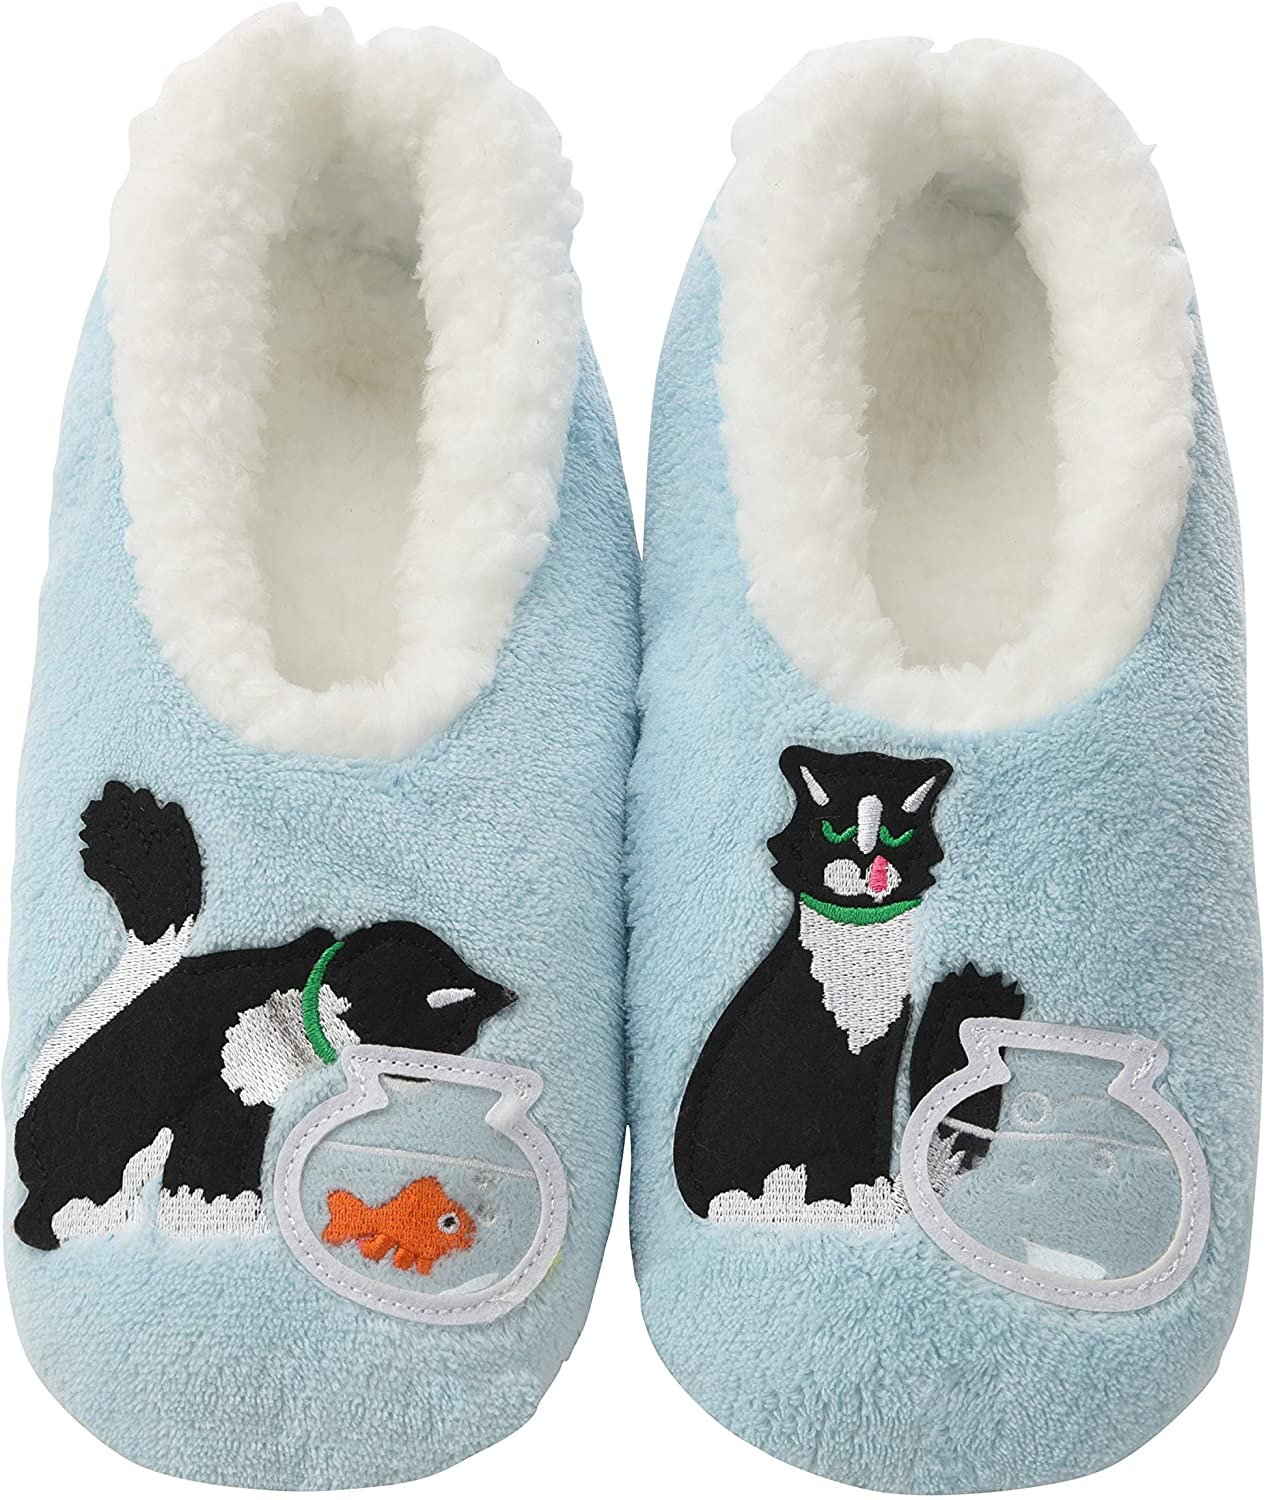 Snoozies Pairables Womens Slippers - House Slippers - Blue Cat